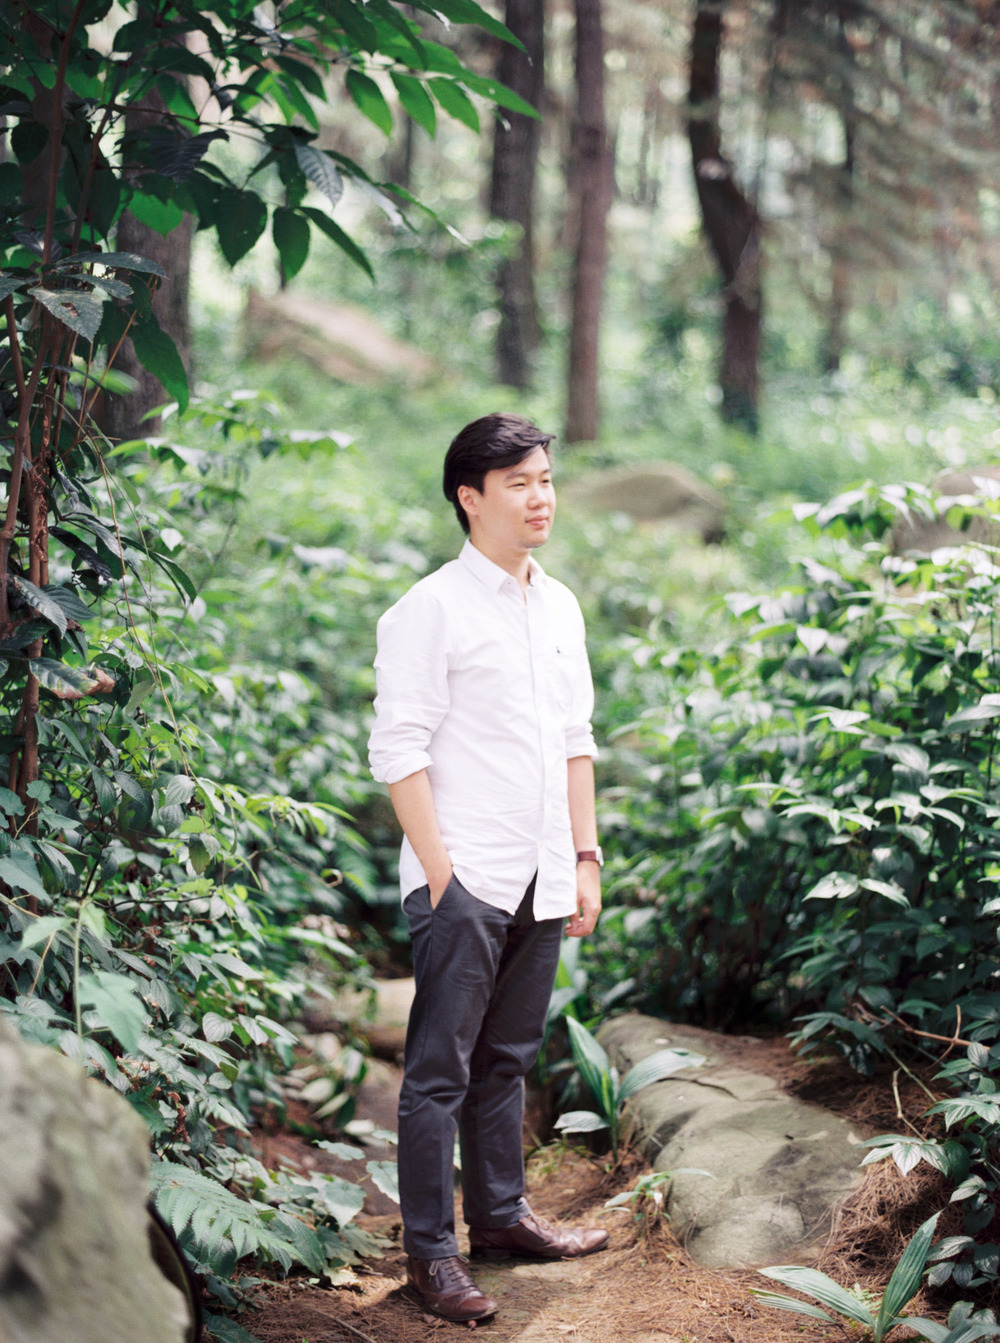 17-nature-outdoor-forest-prewedding-jakarta.jpg